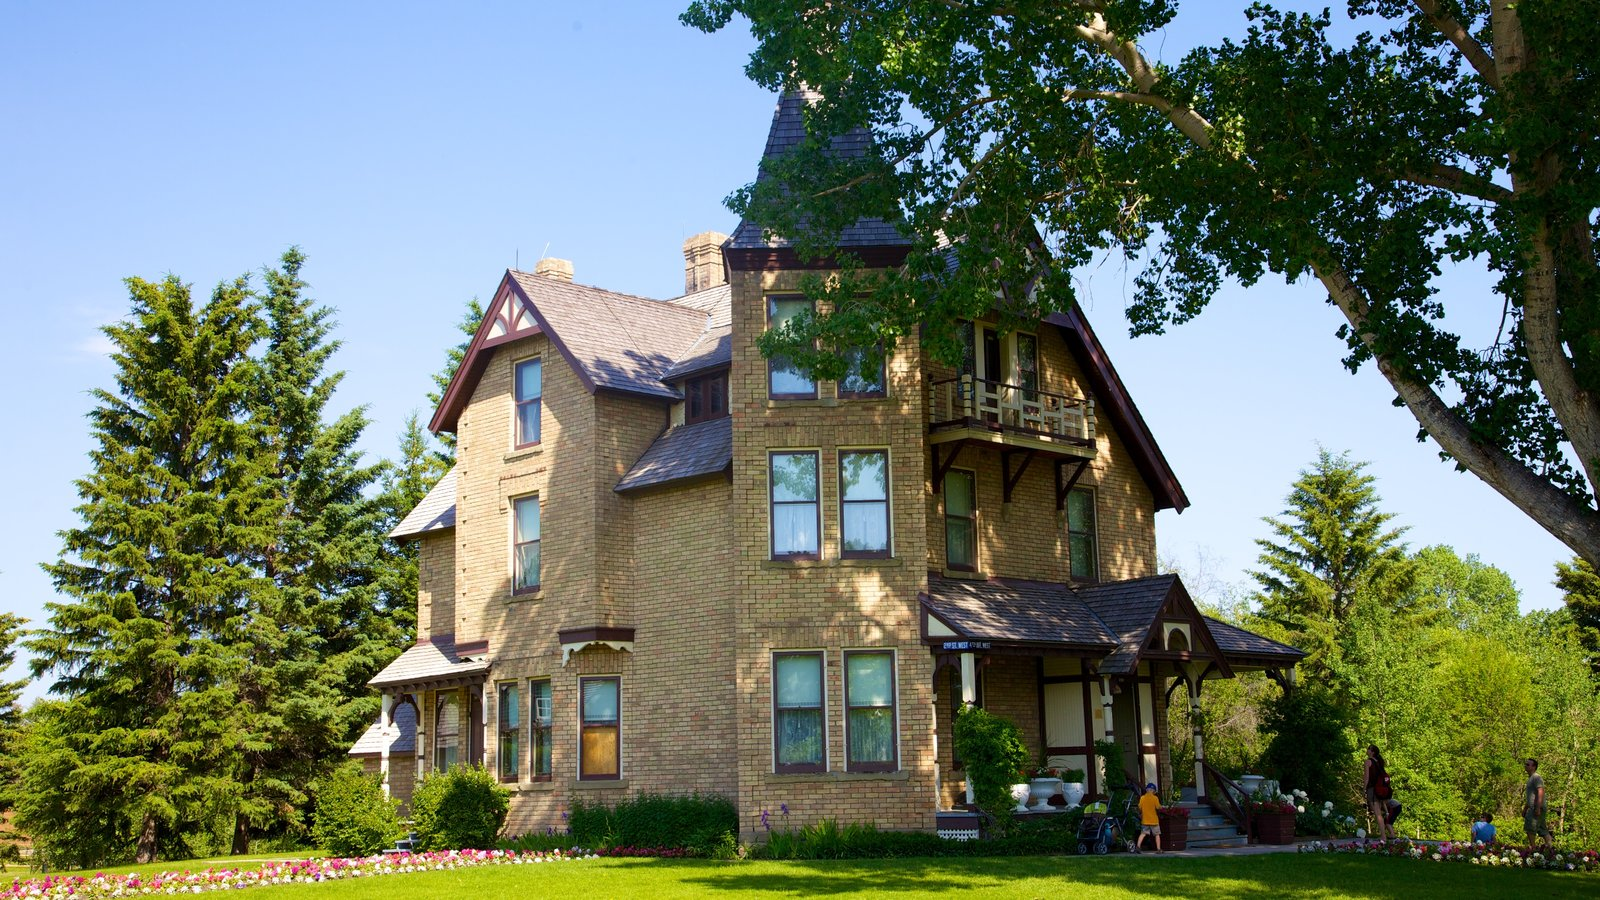 Alberta featuring a house and heritage architecture